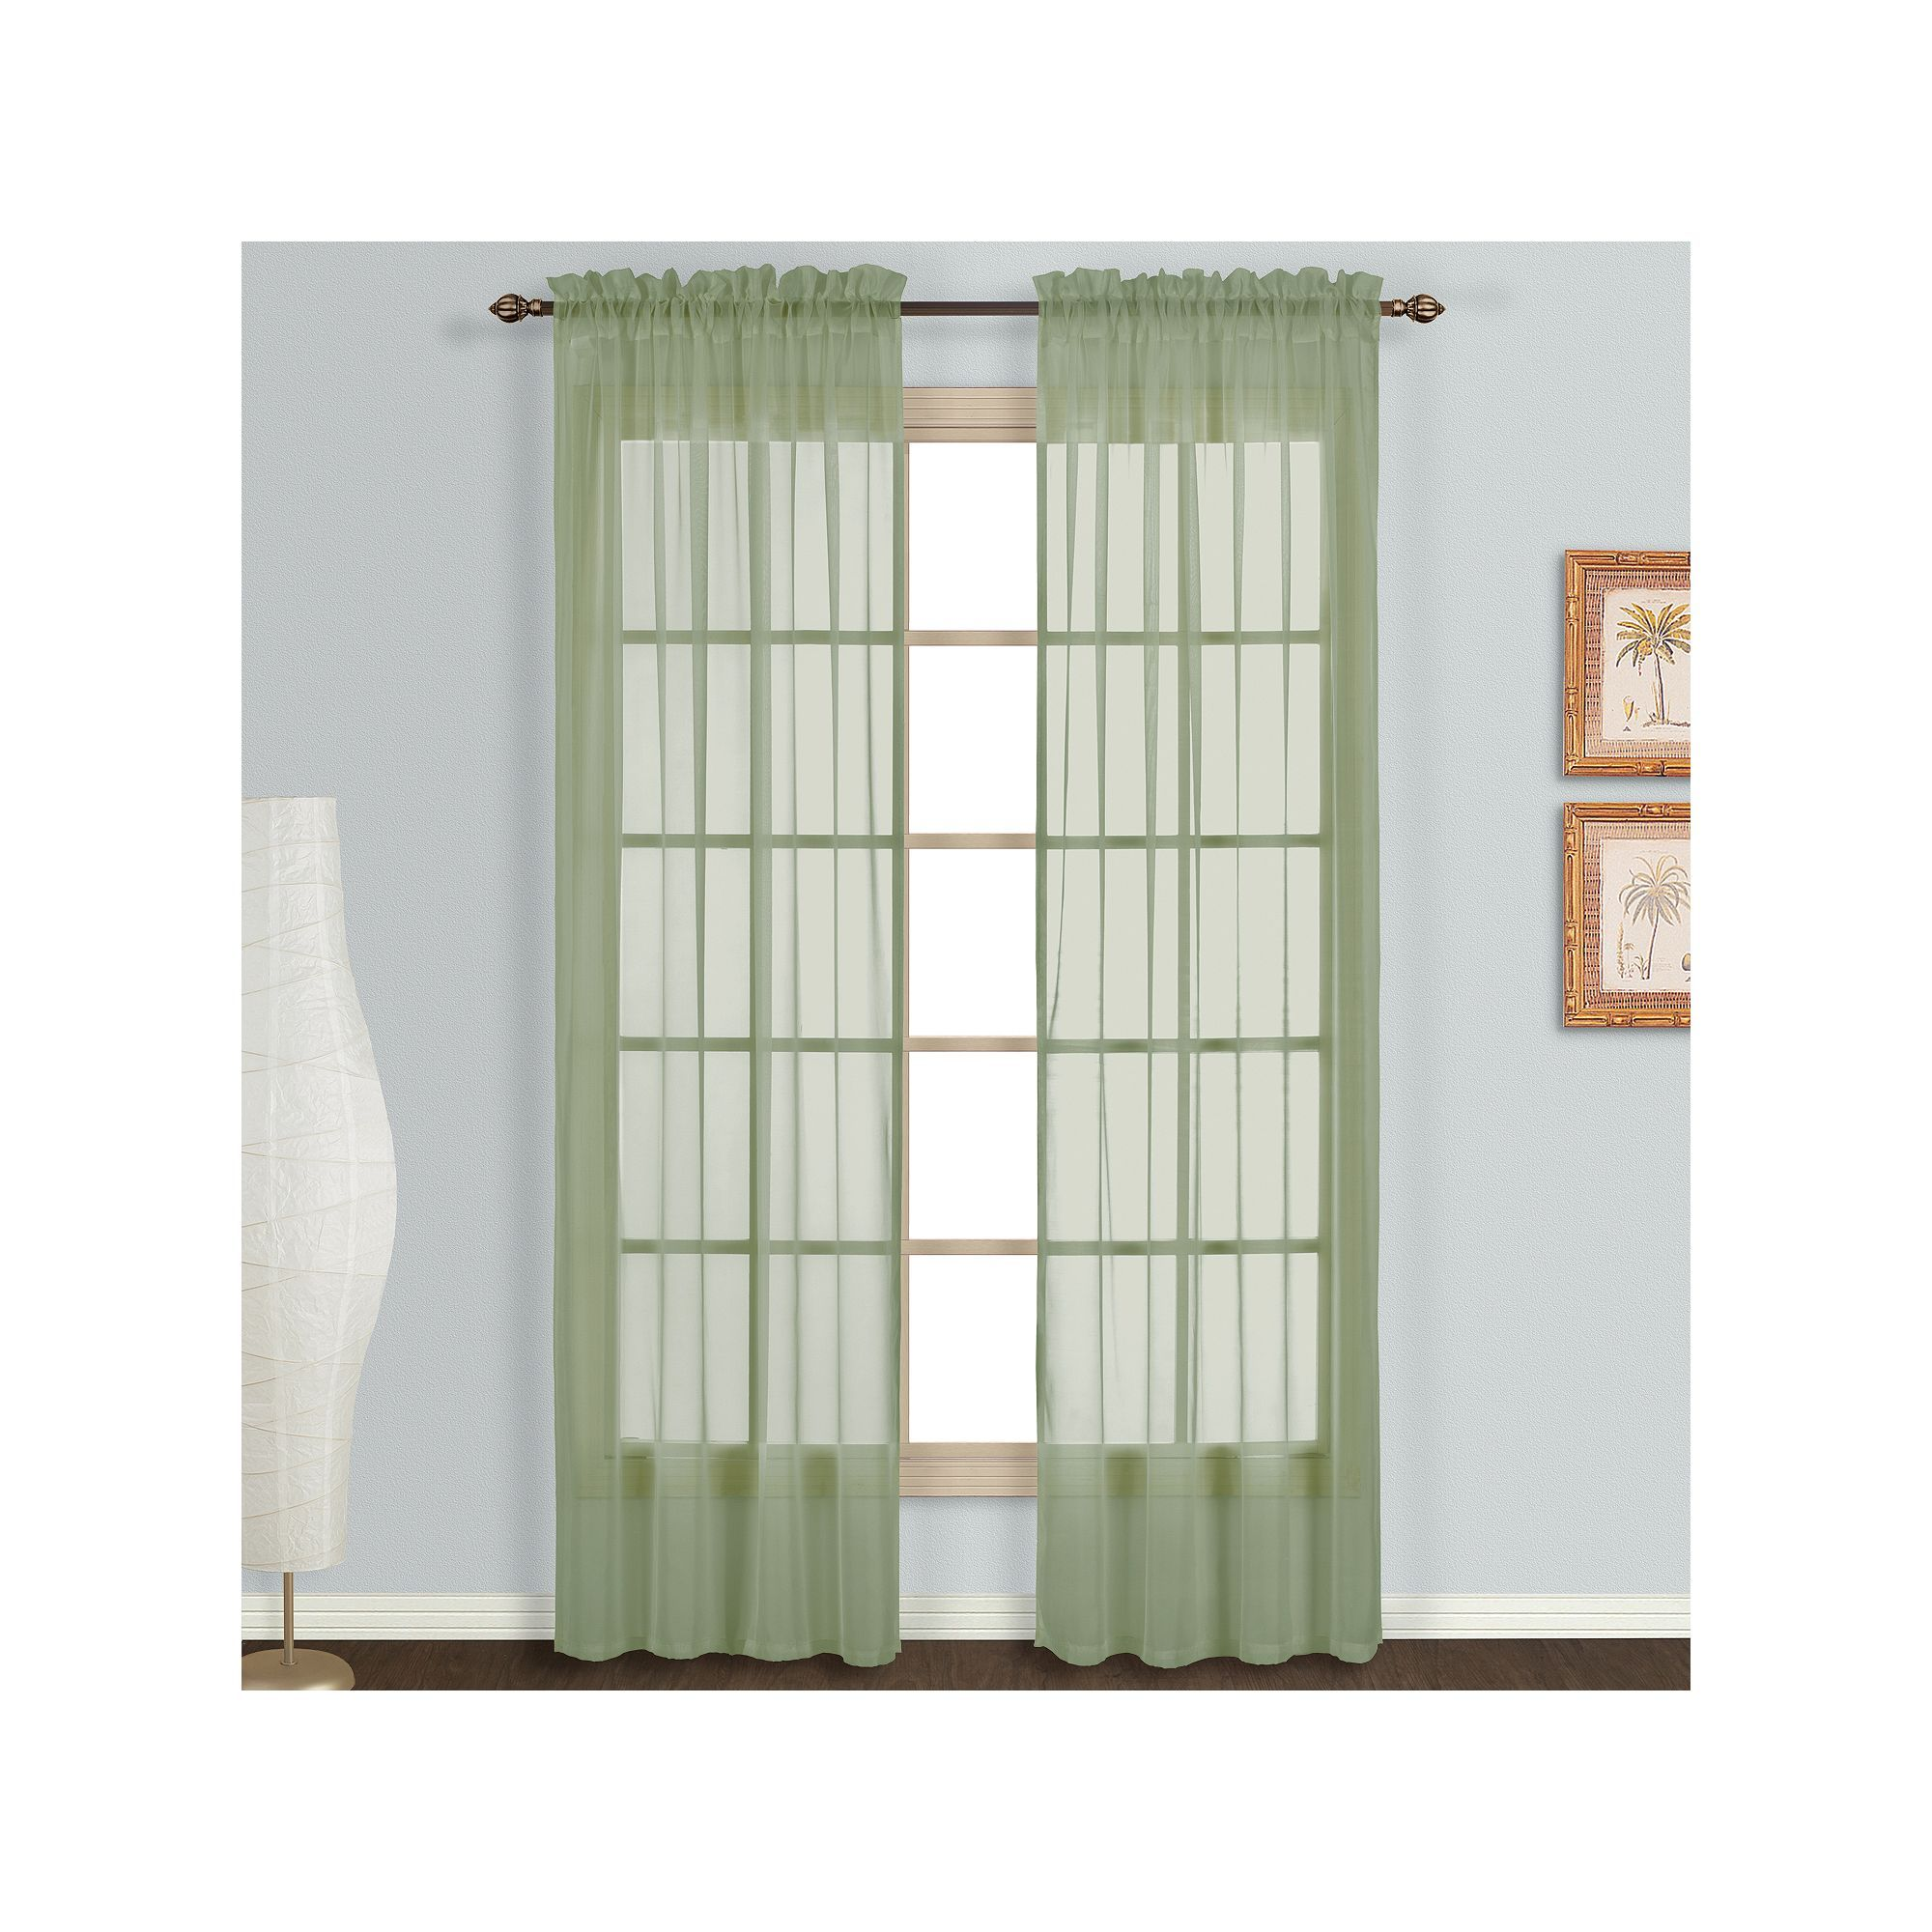 United Curtain Co 2 Pack Monte Carlo Voile Window Curtains Green